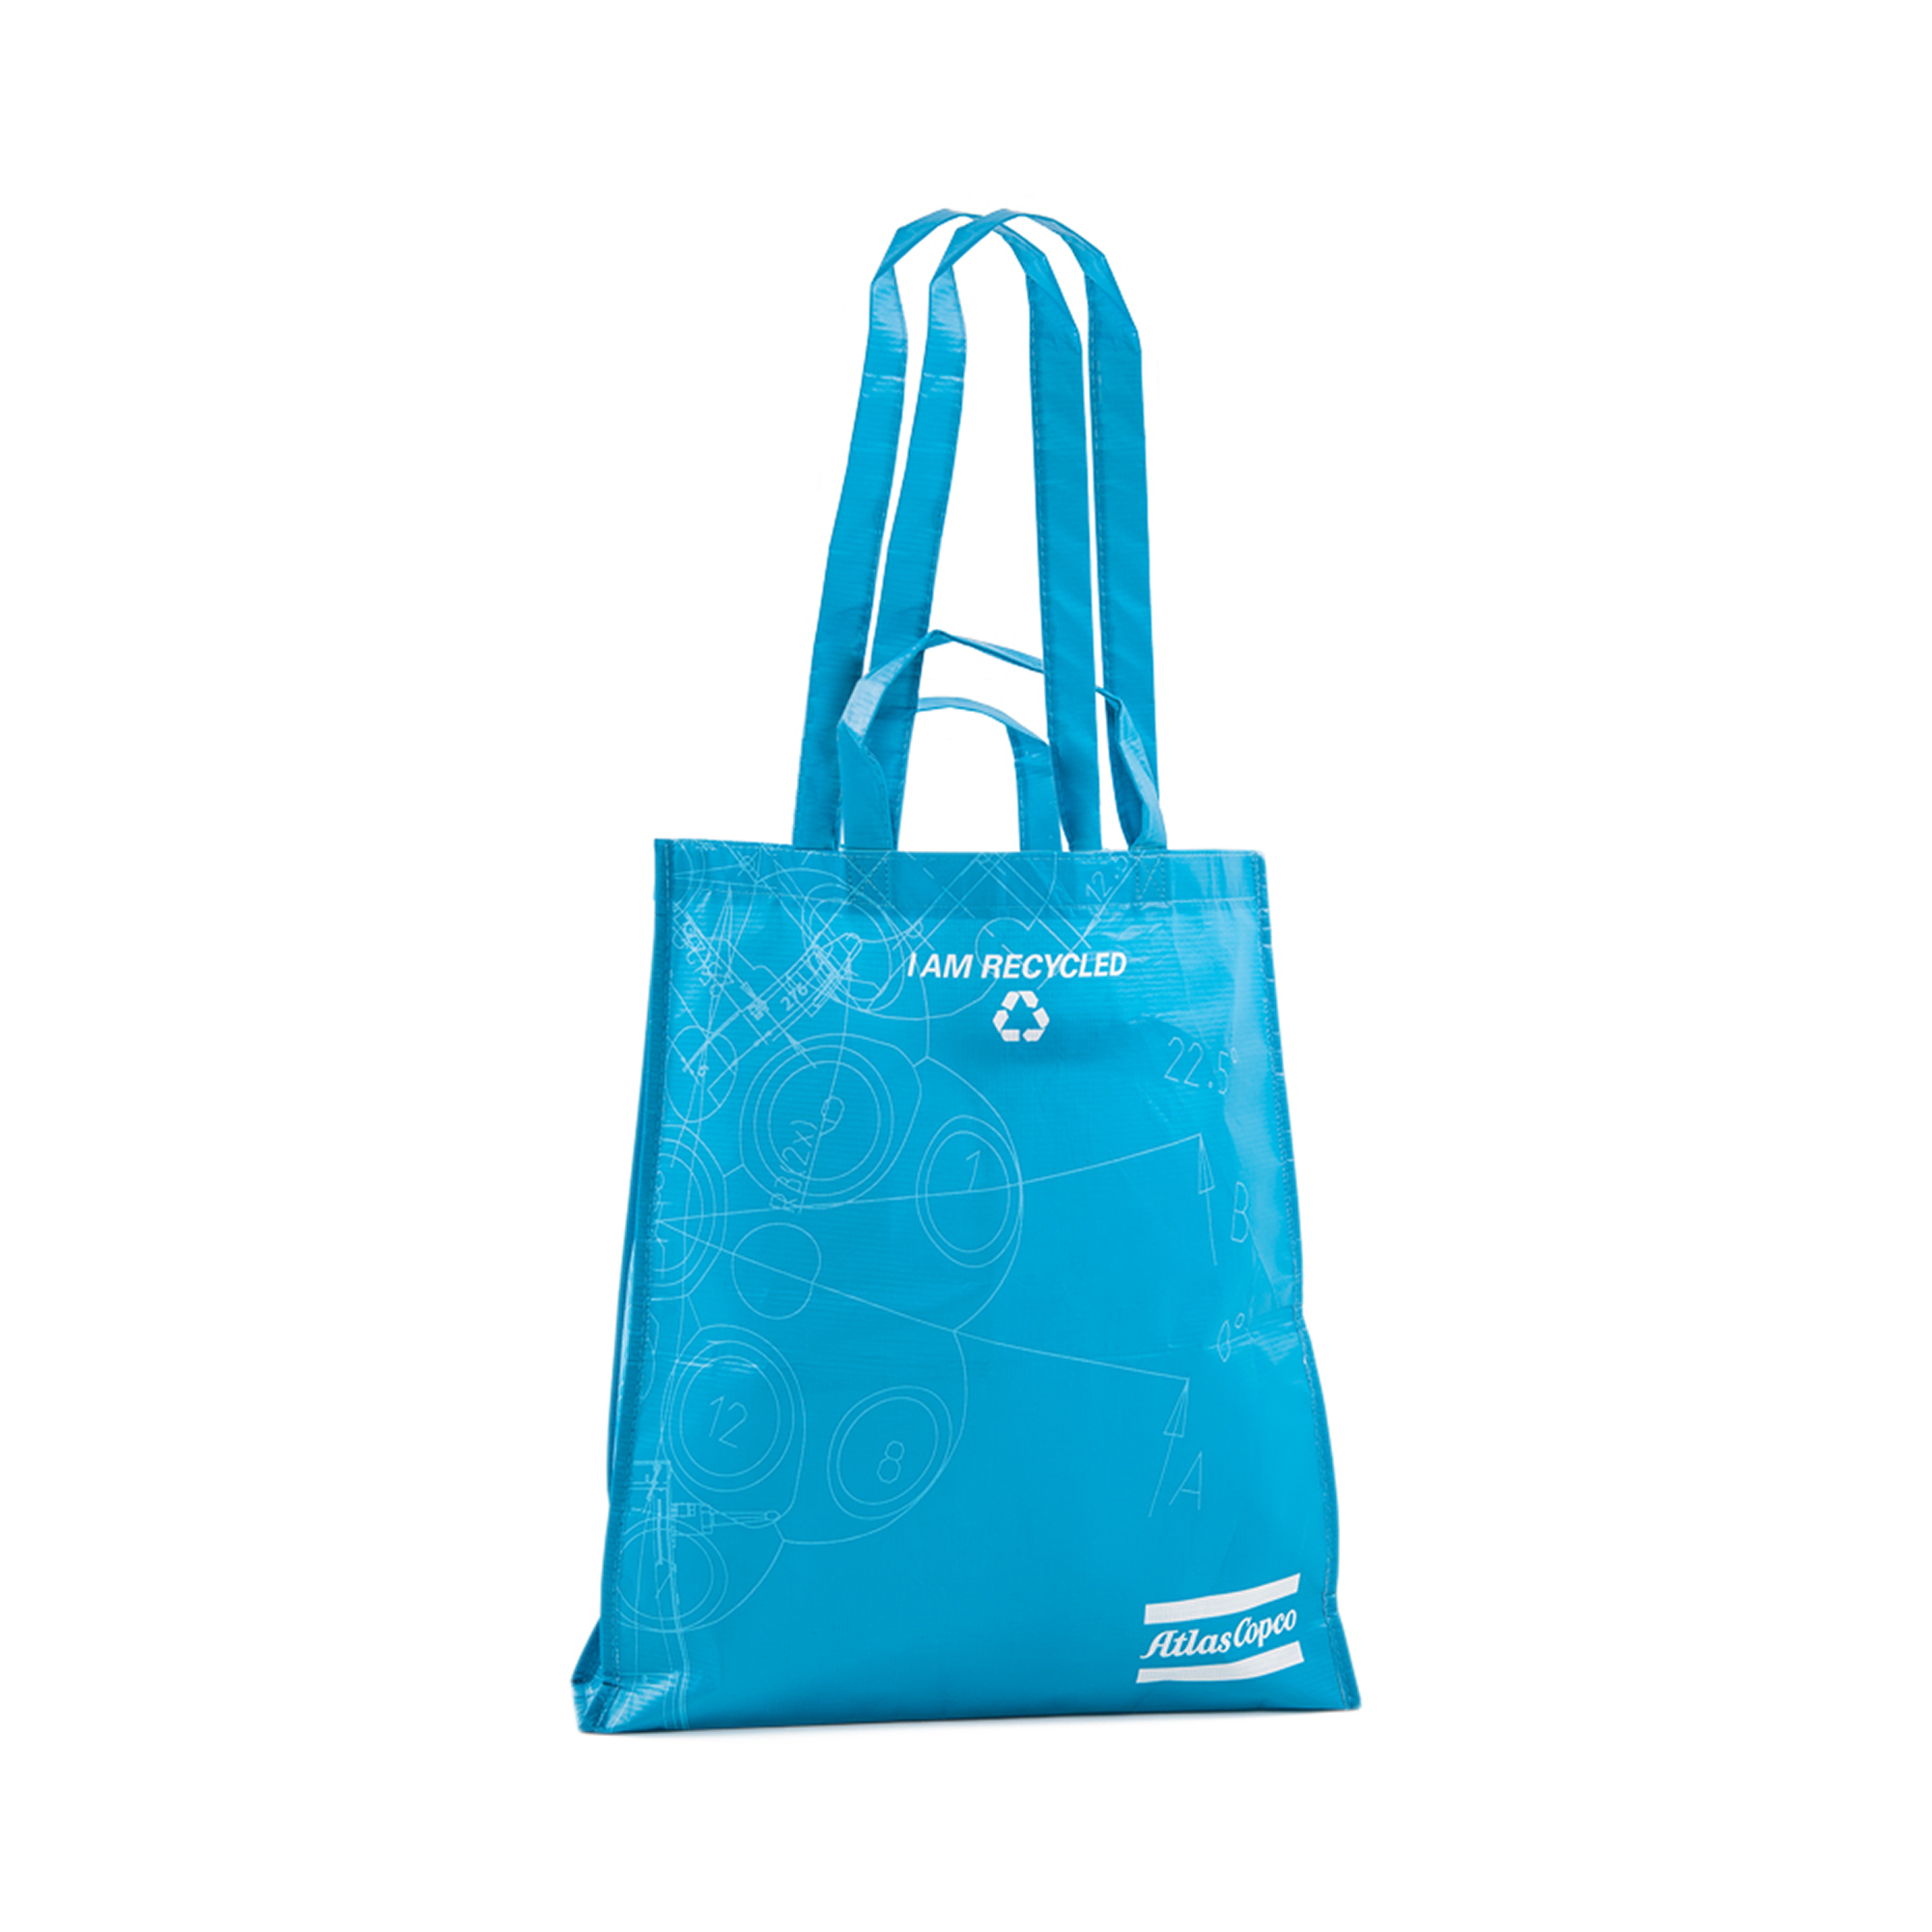 This BluePrint PP-woven bag are made from recycled PET bottles The bag are popular for events, conferences, expos and tradeshows.